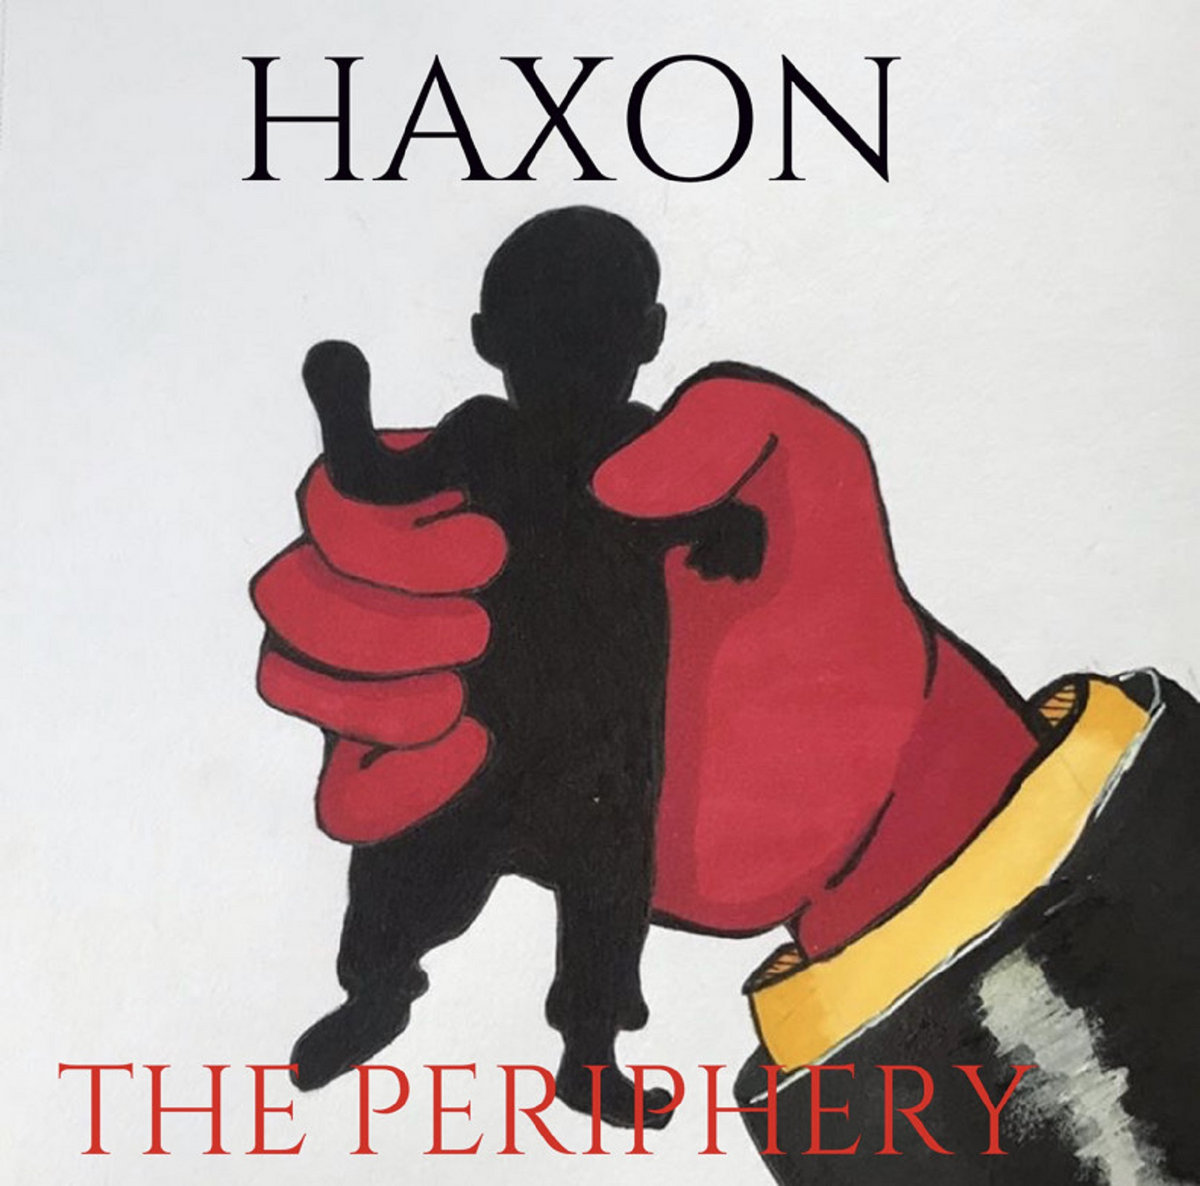 The Periphery by Haxon